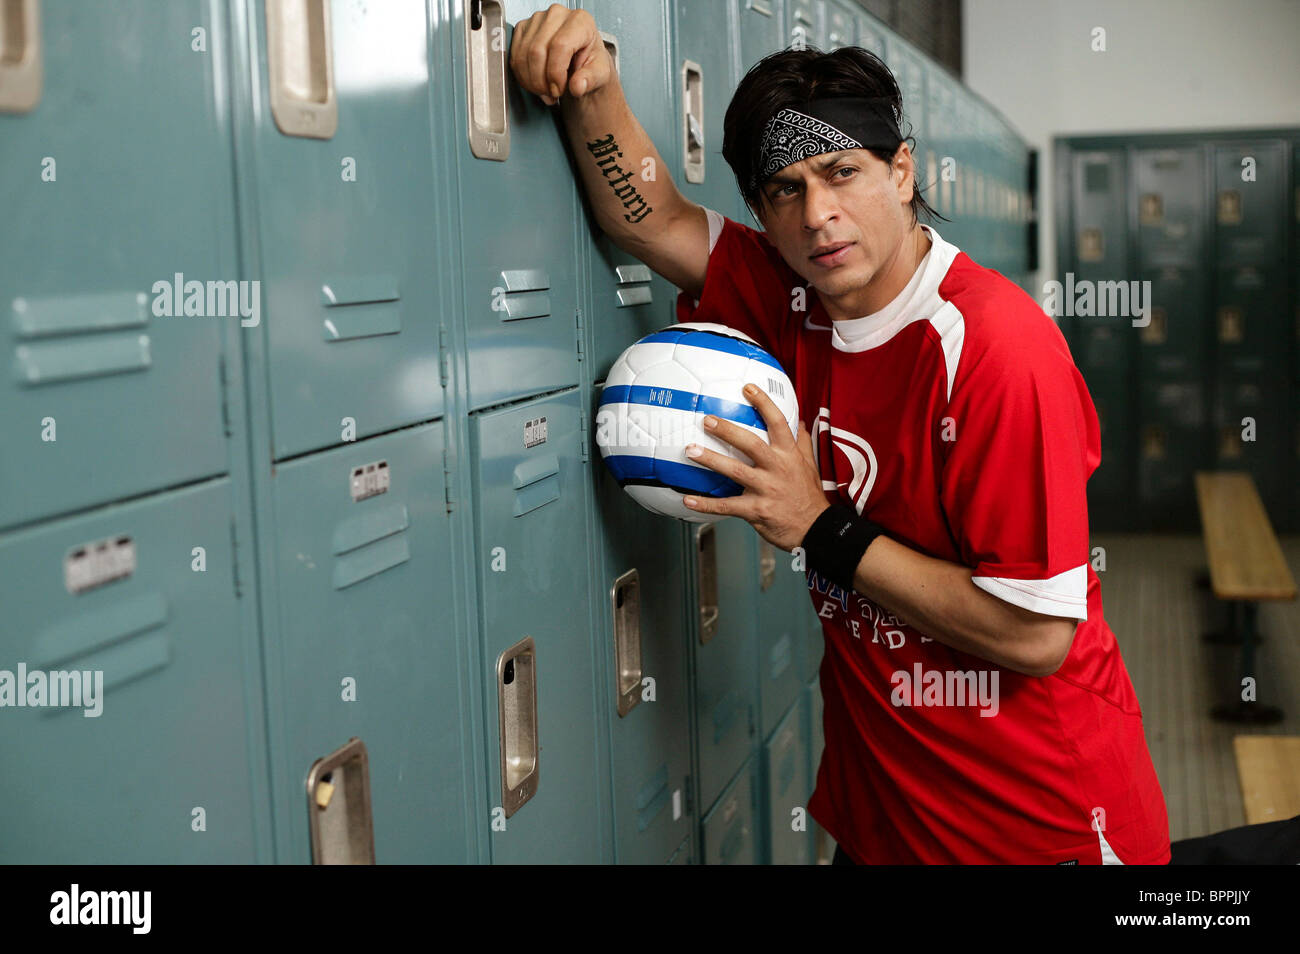 Image result for shahrukh khan soccer kank